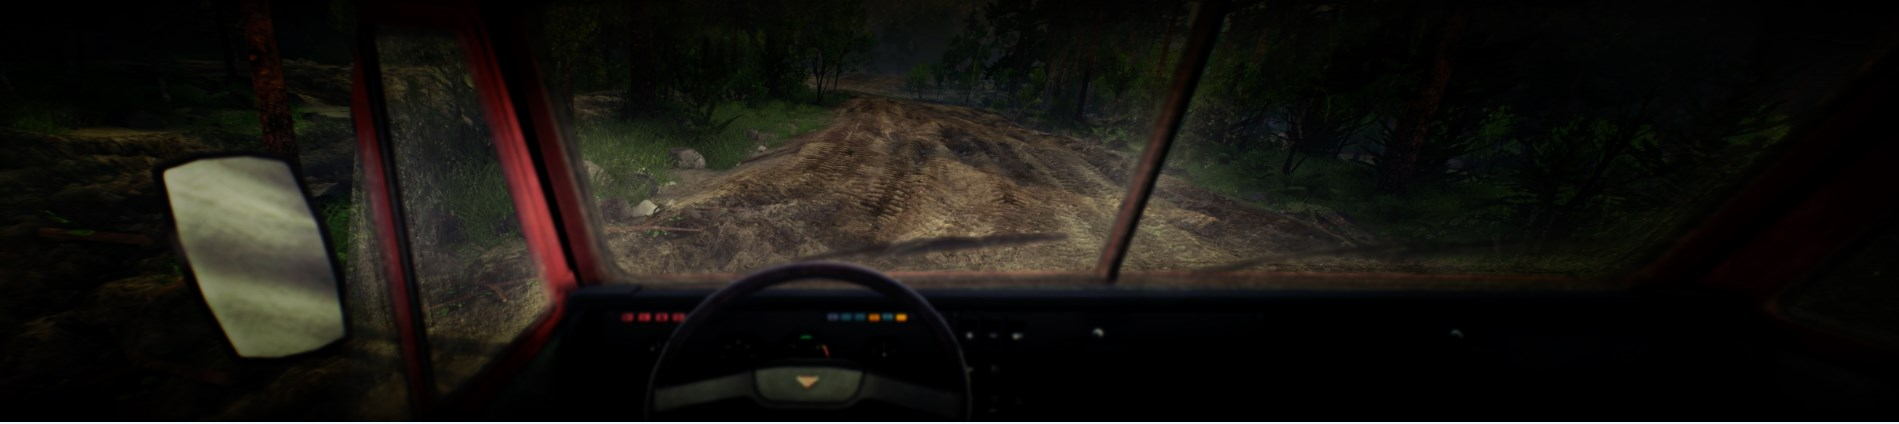 View from the drivers seat